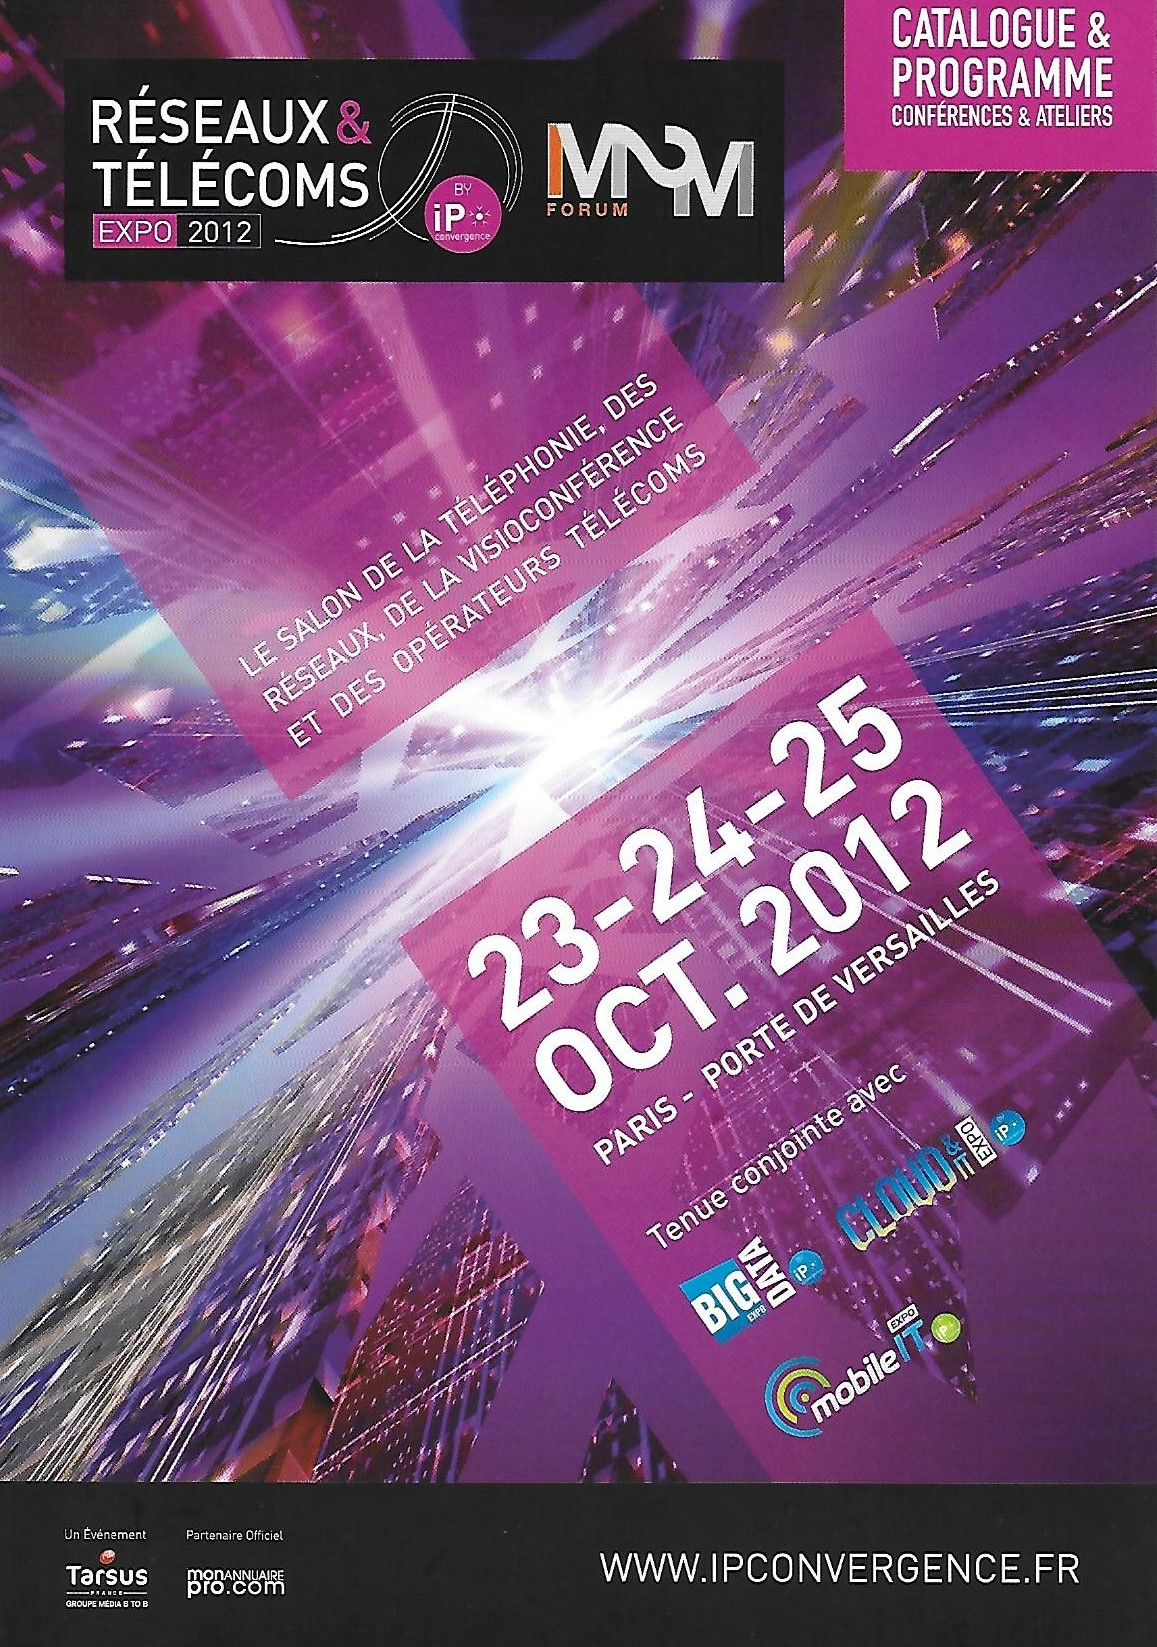 3i3s IP CONVERGENCE – RESEAUX & TELECOMS TELECOMS EXPO 2012